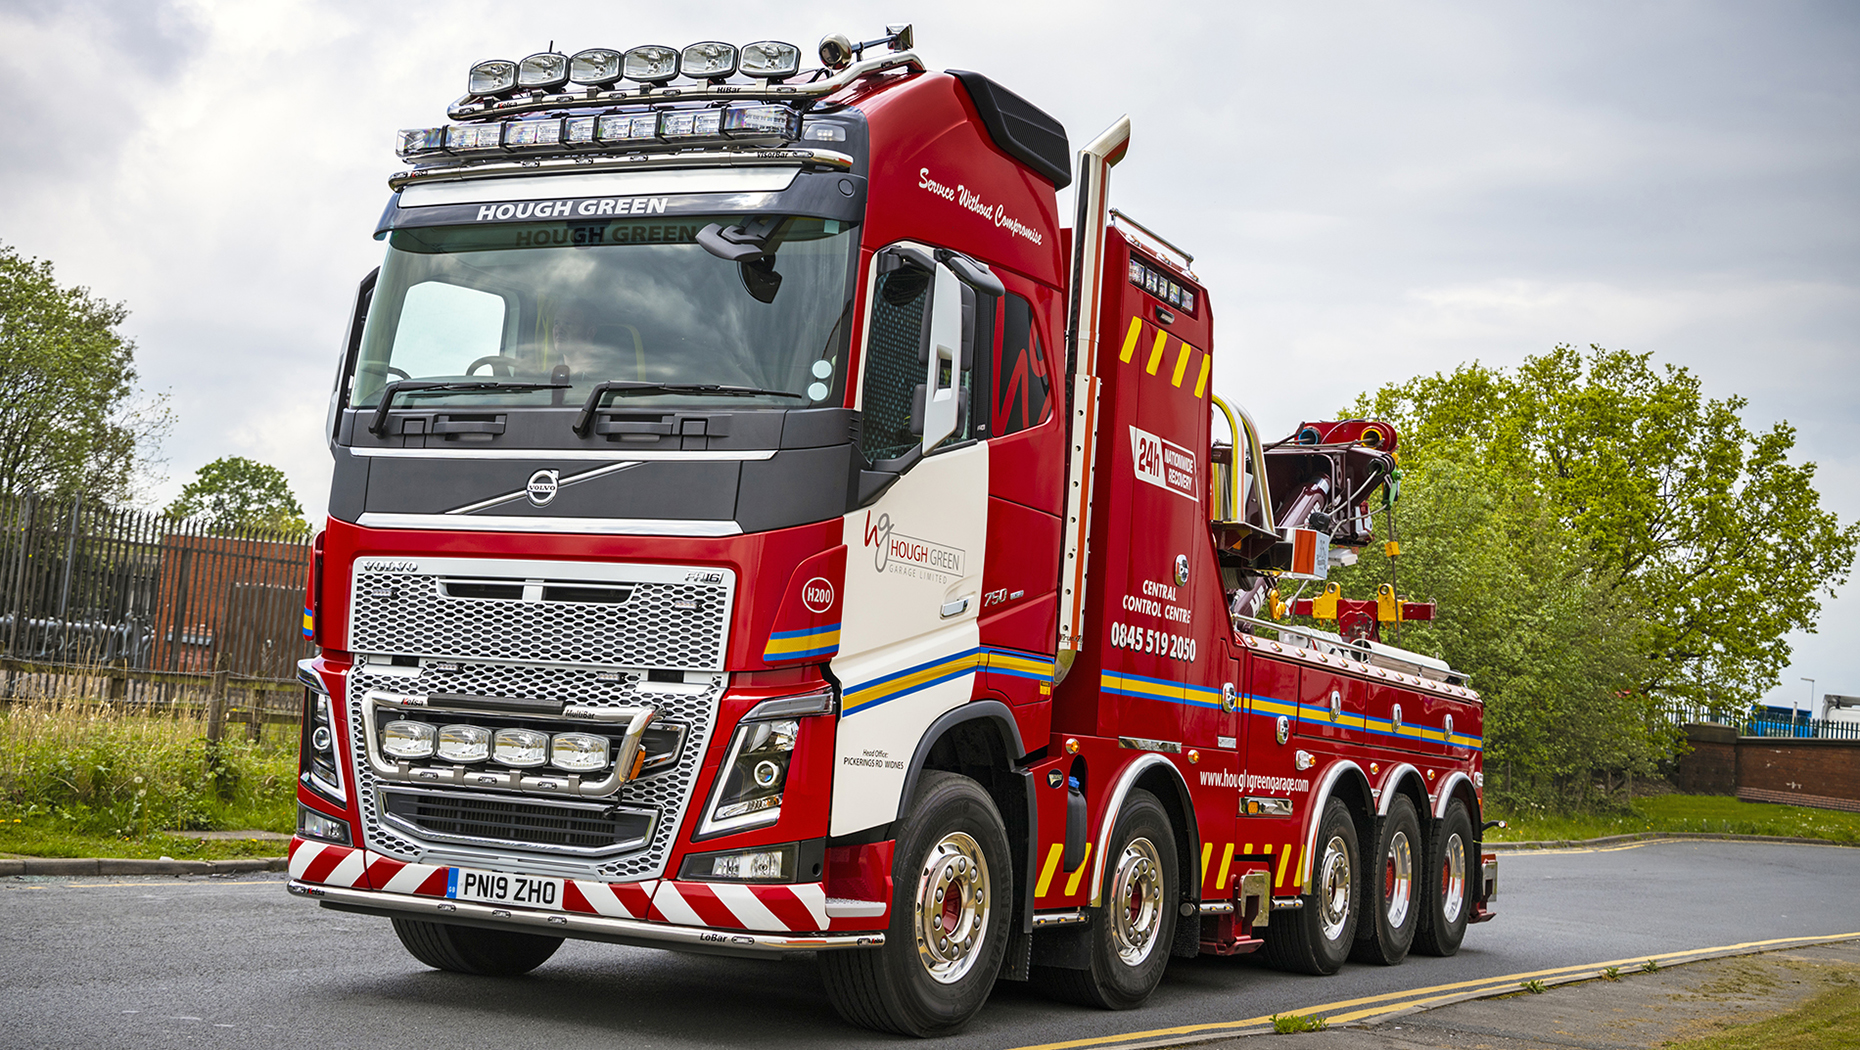 Hough Green Garage favours a five-axle Volvo FH16 750 for its new fleet flagship